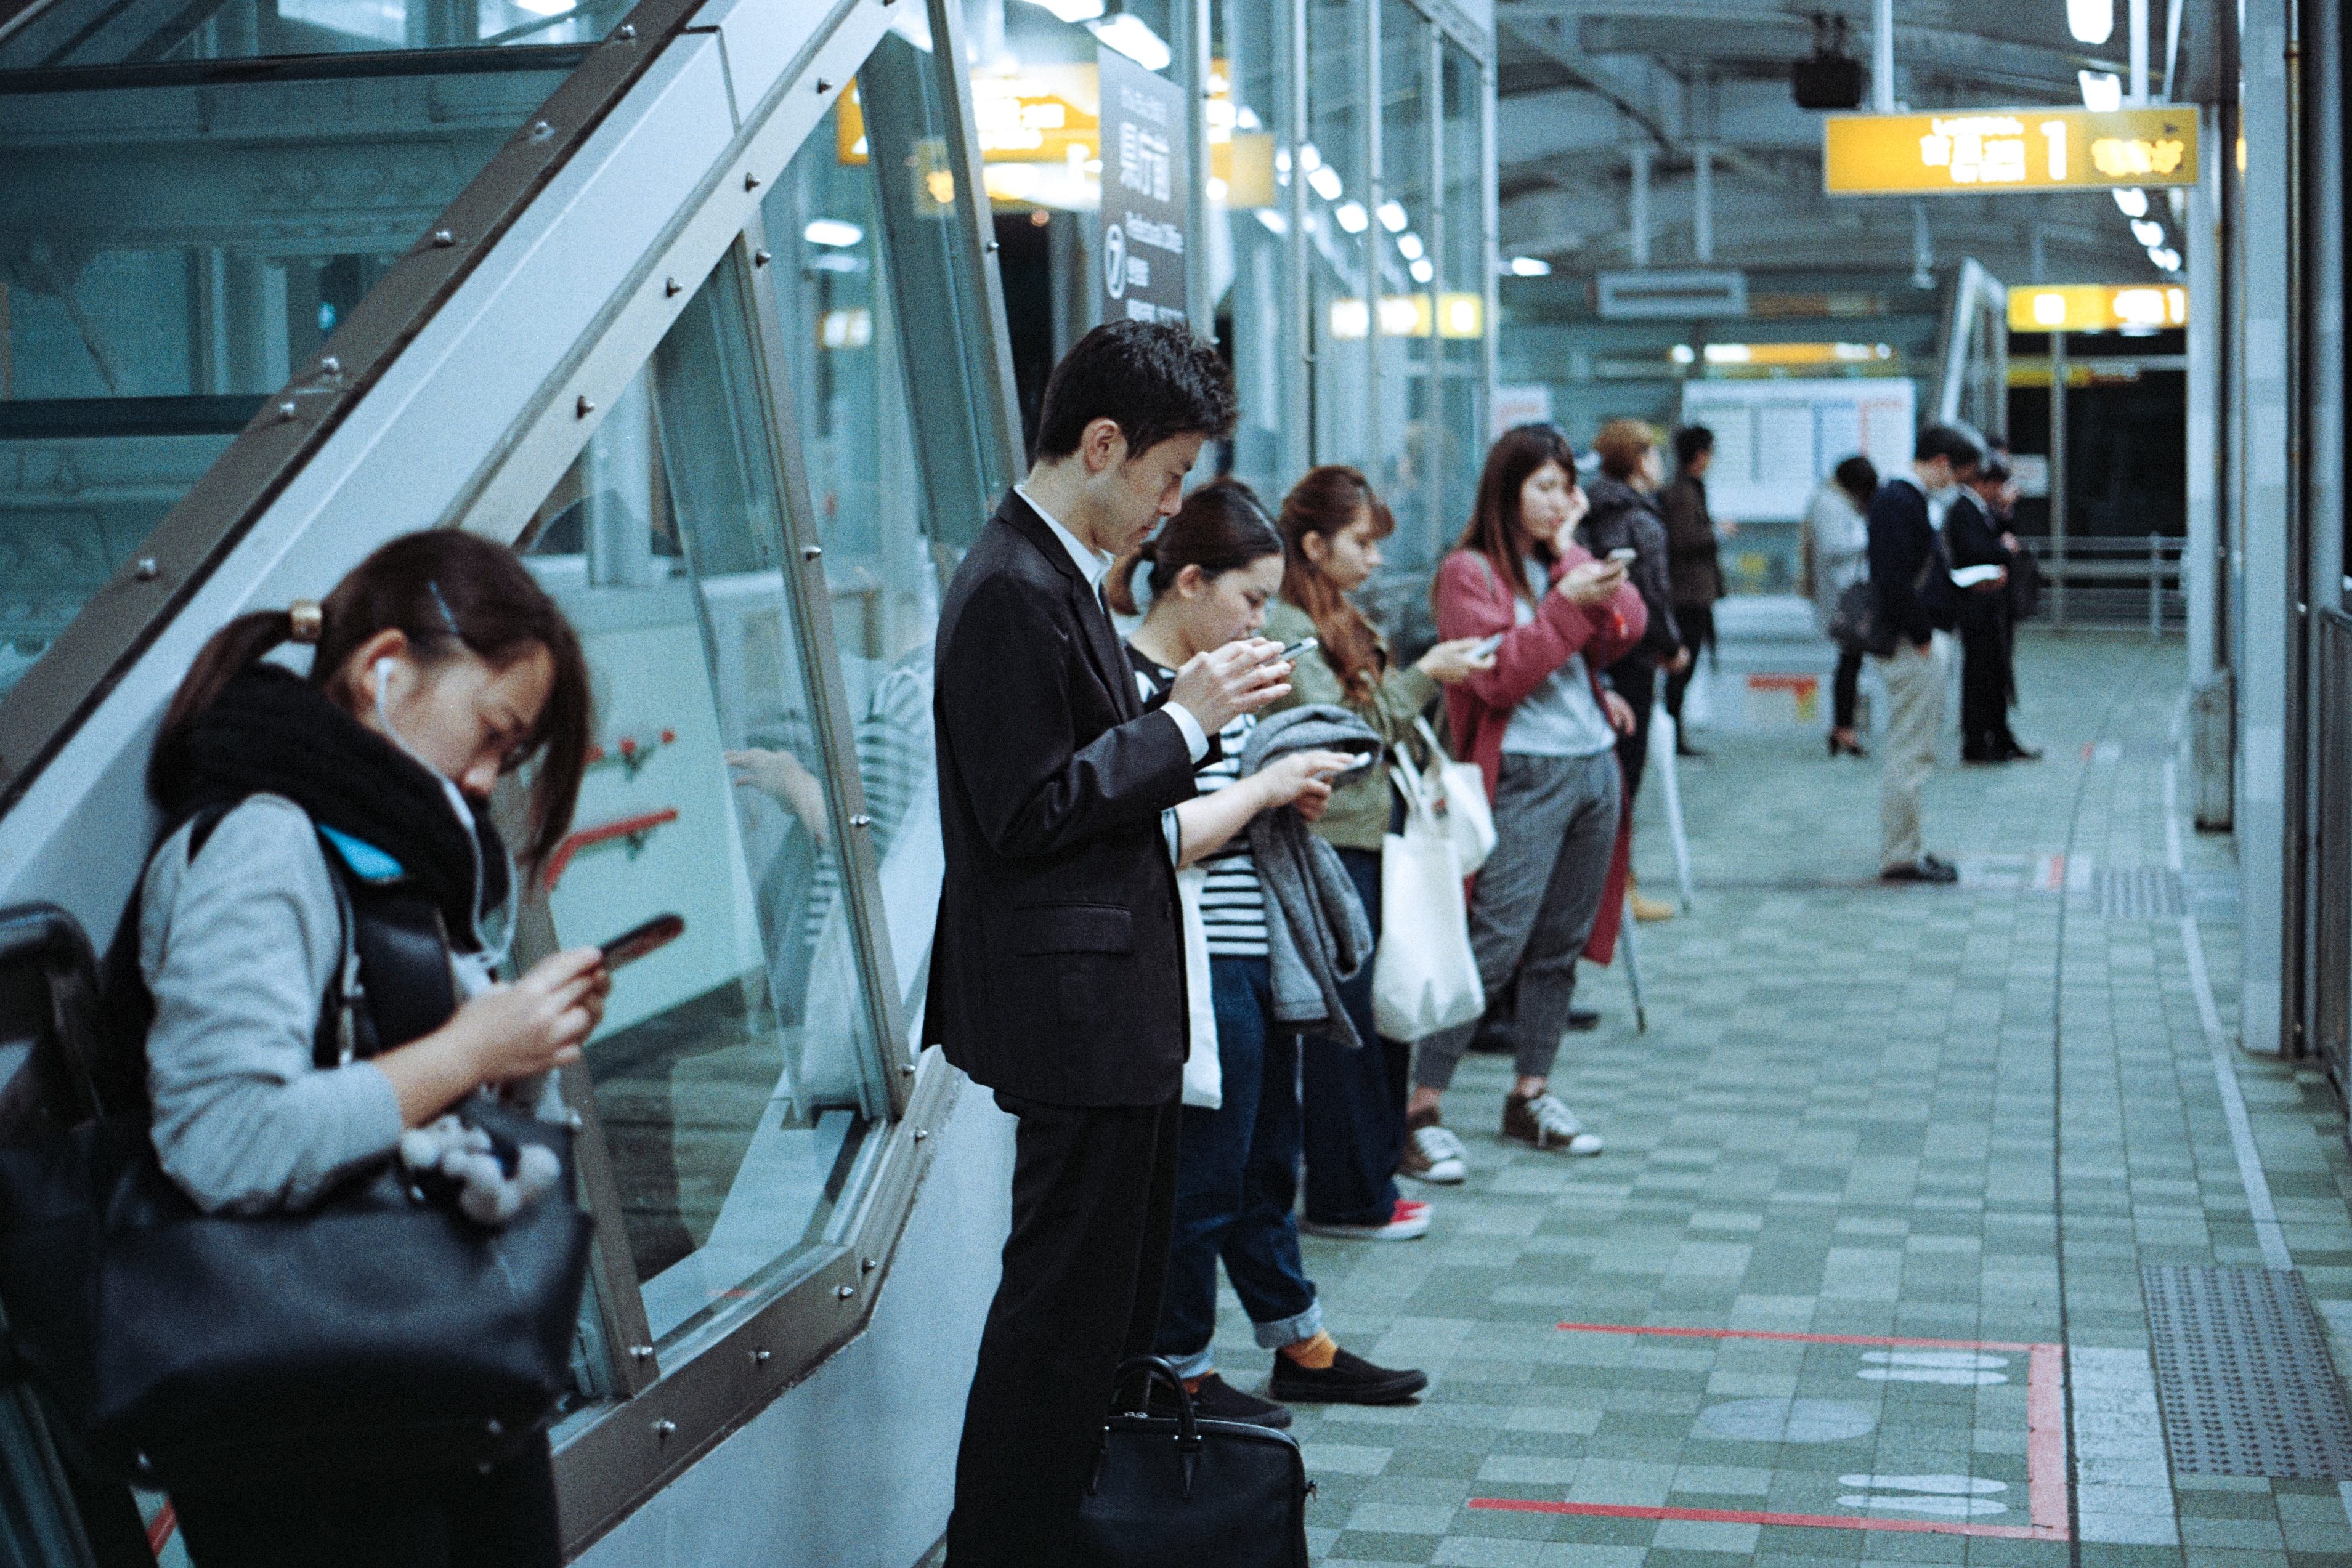 Commuters texting while waiting for the train